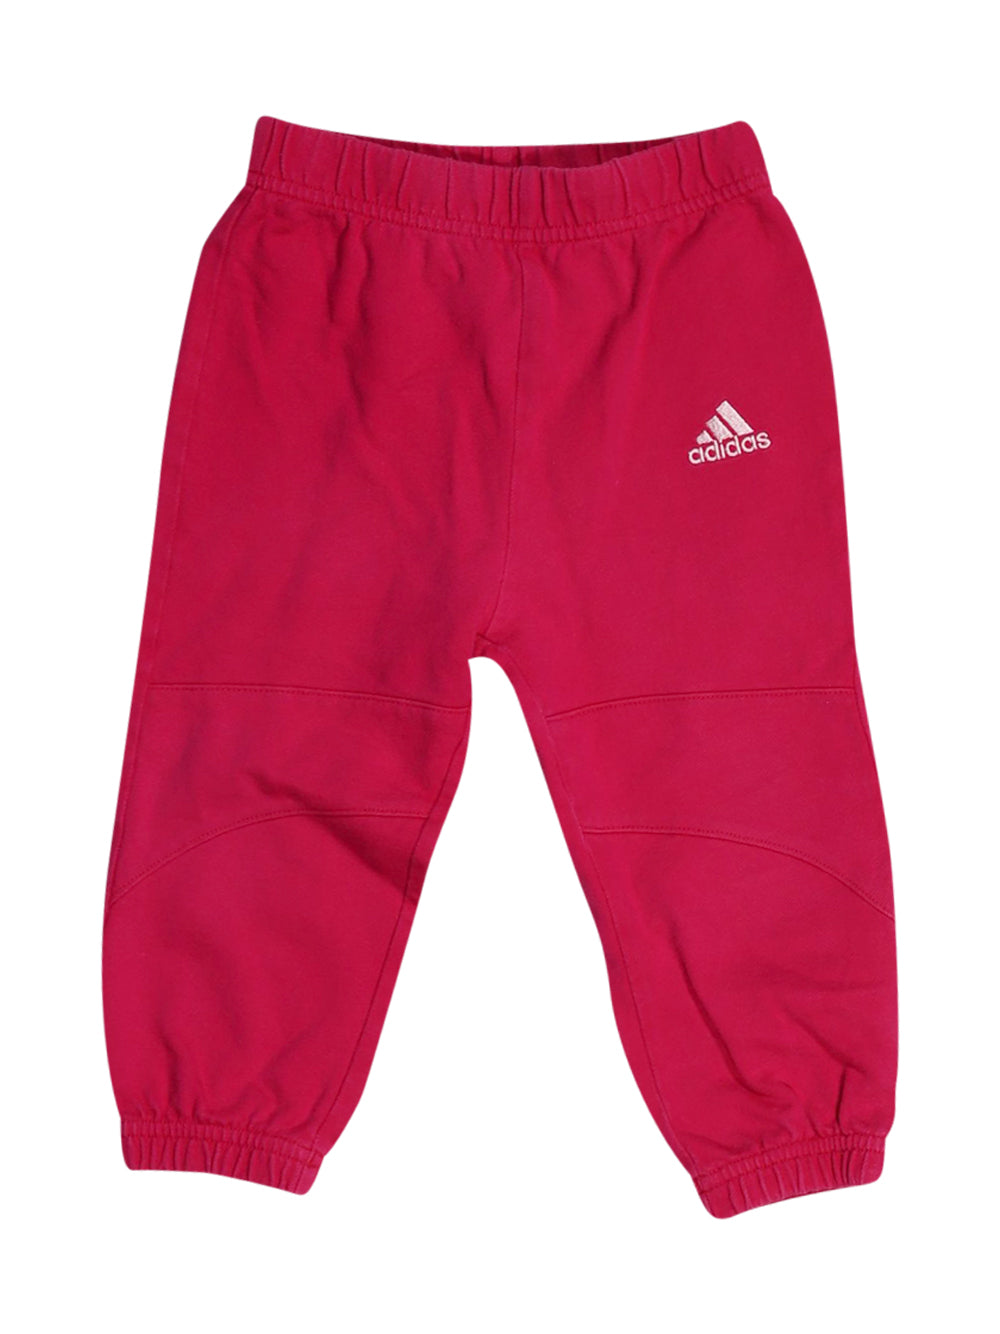 Front photo of Preloved Adidas Pink Girl's trousers - size 12-18 mths